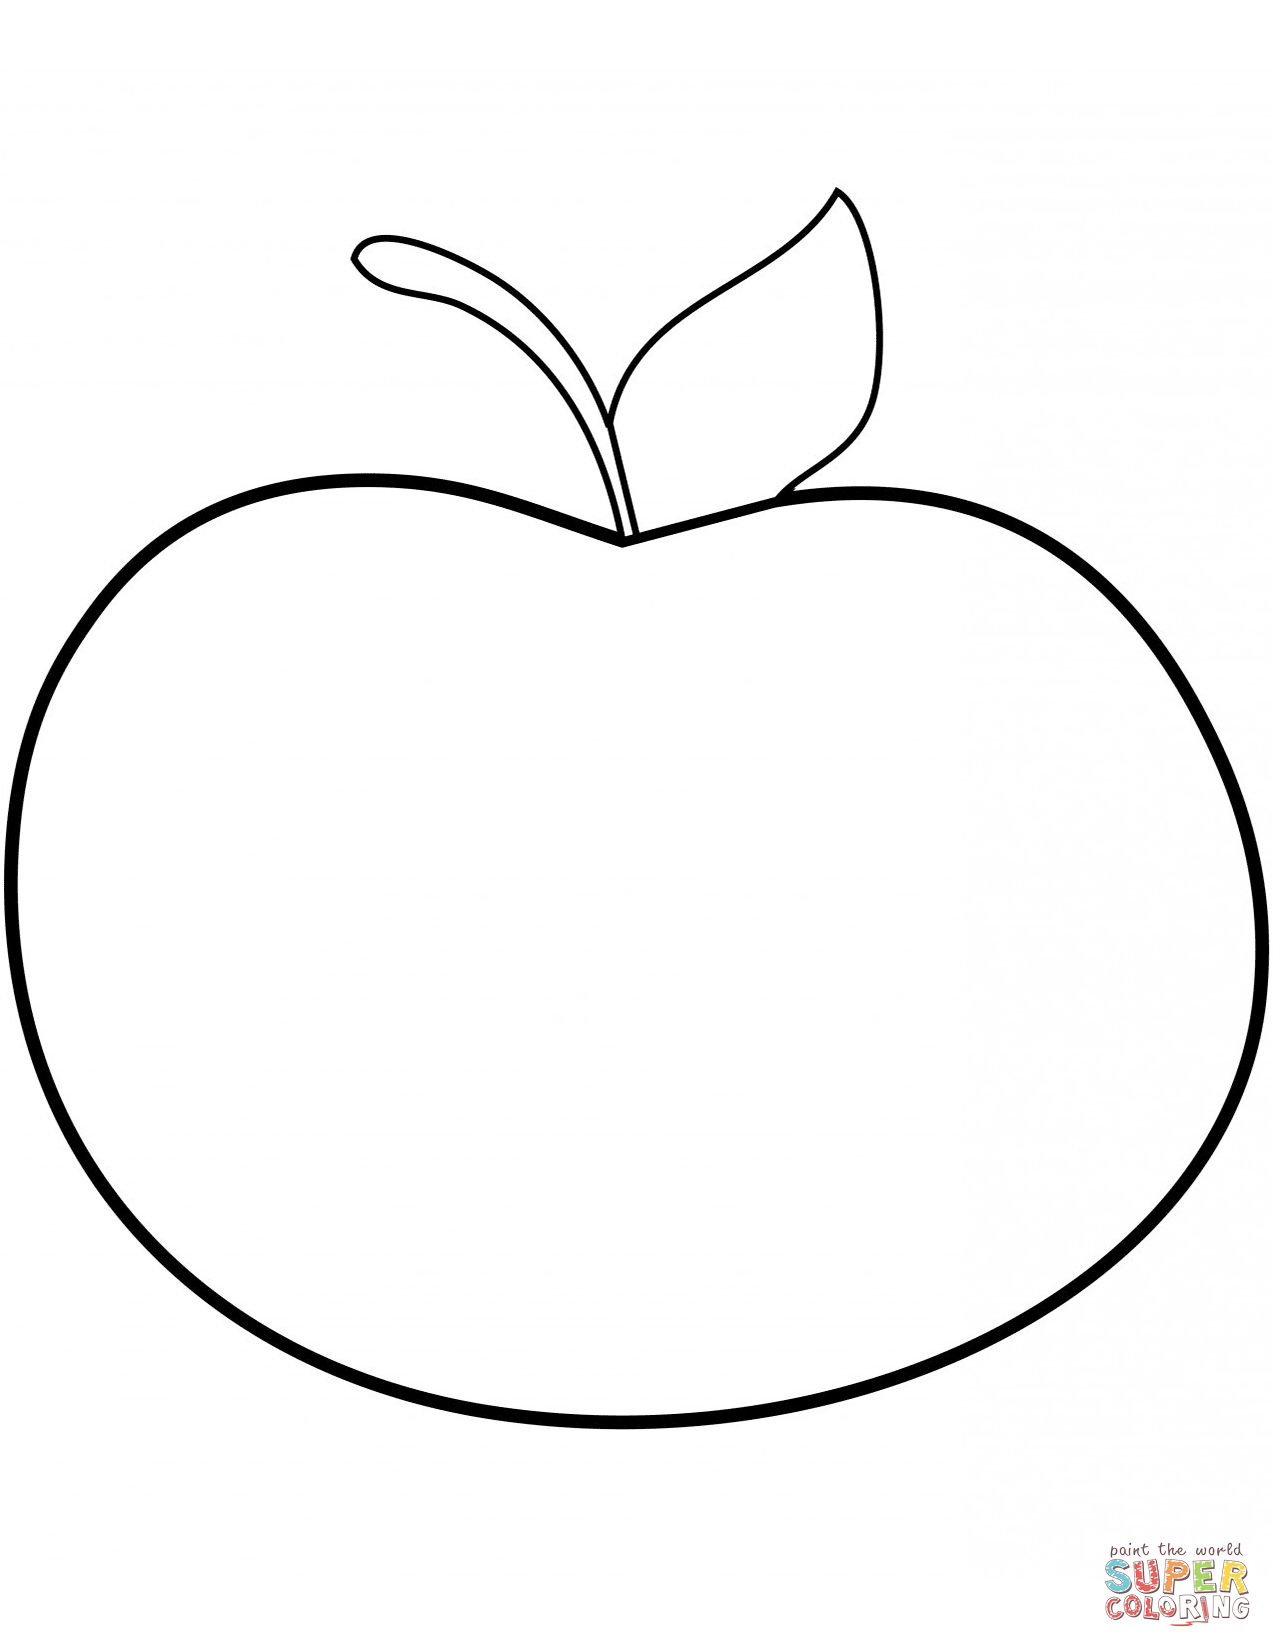 Apple Logo Coloring Pages At Getcolorings